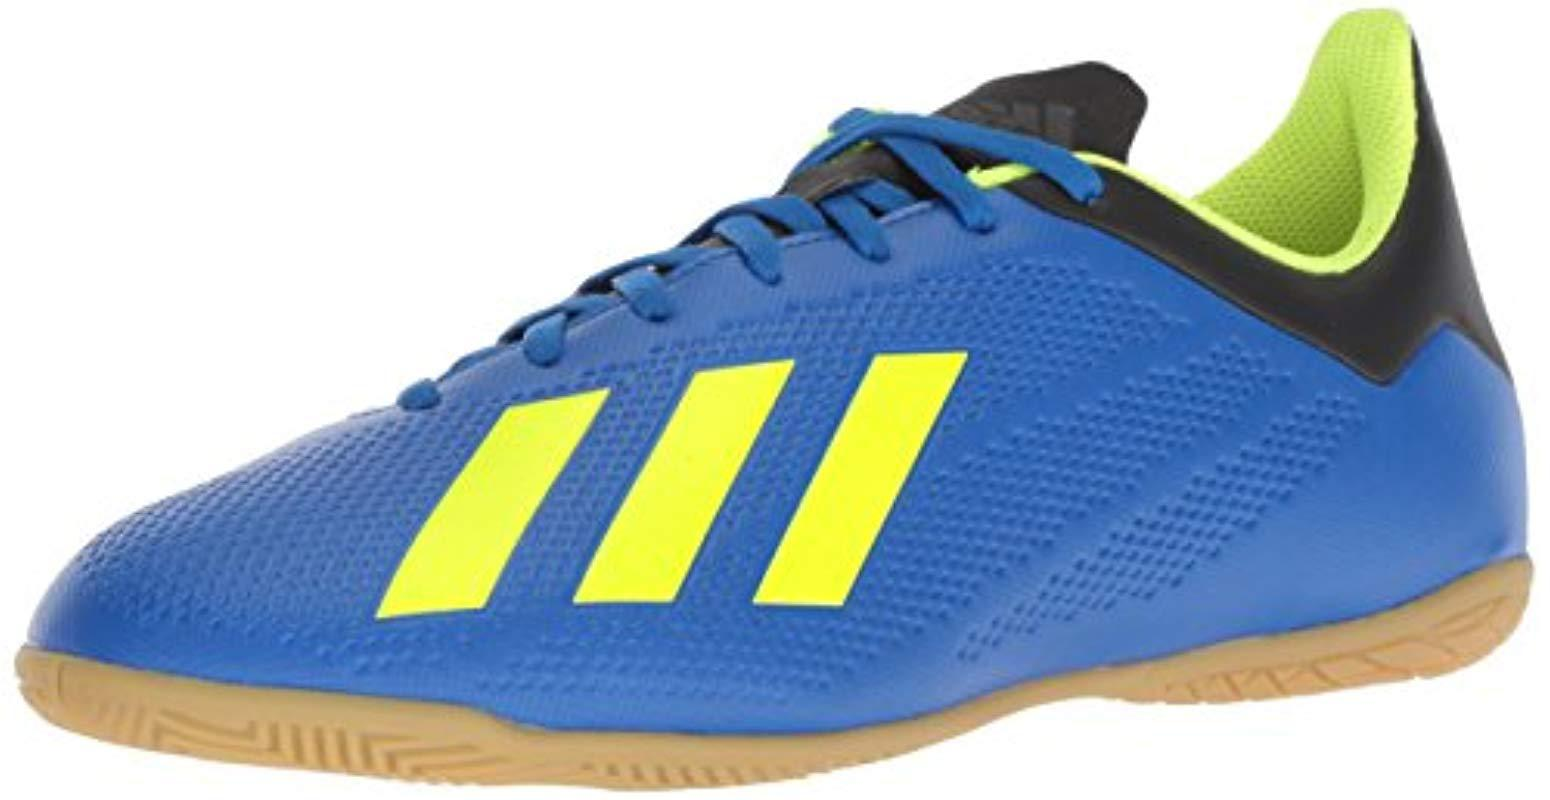 f8a73deee16 adidas X Tango 18.4 Indoor Soccer Shoe in Blue for Men - Save 6% - Lyst